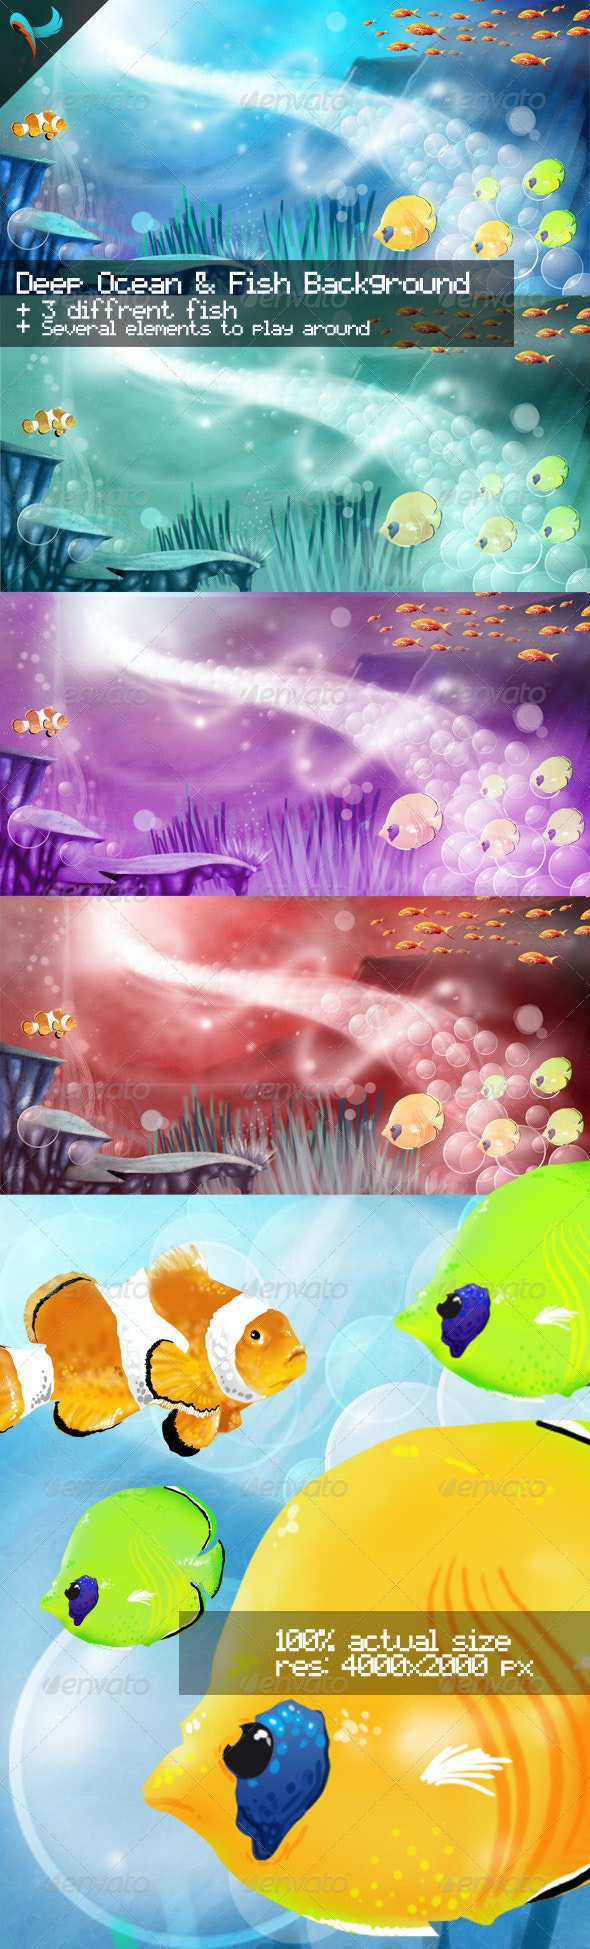 Deep Ocean and Fish Illustrated Background - Illustrations Graphics